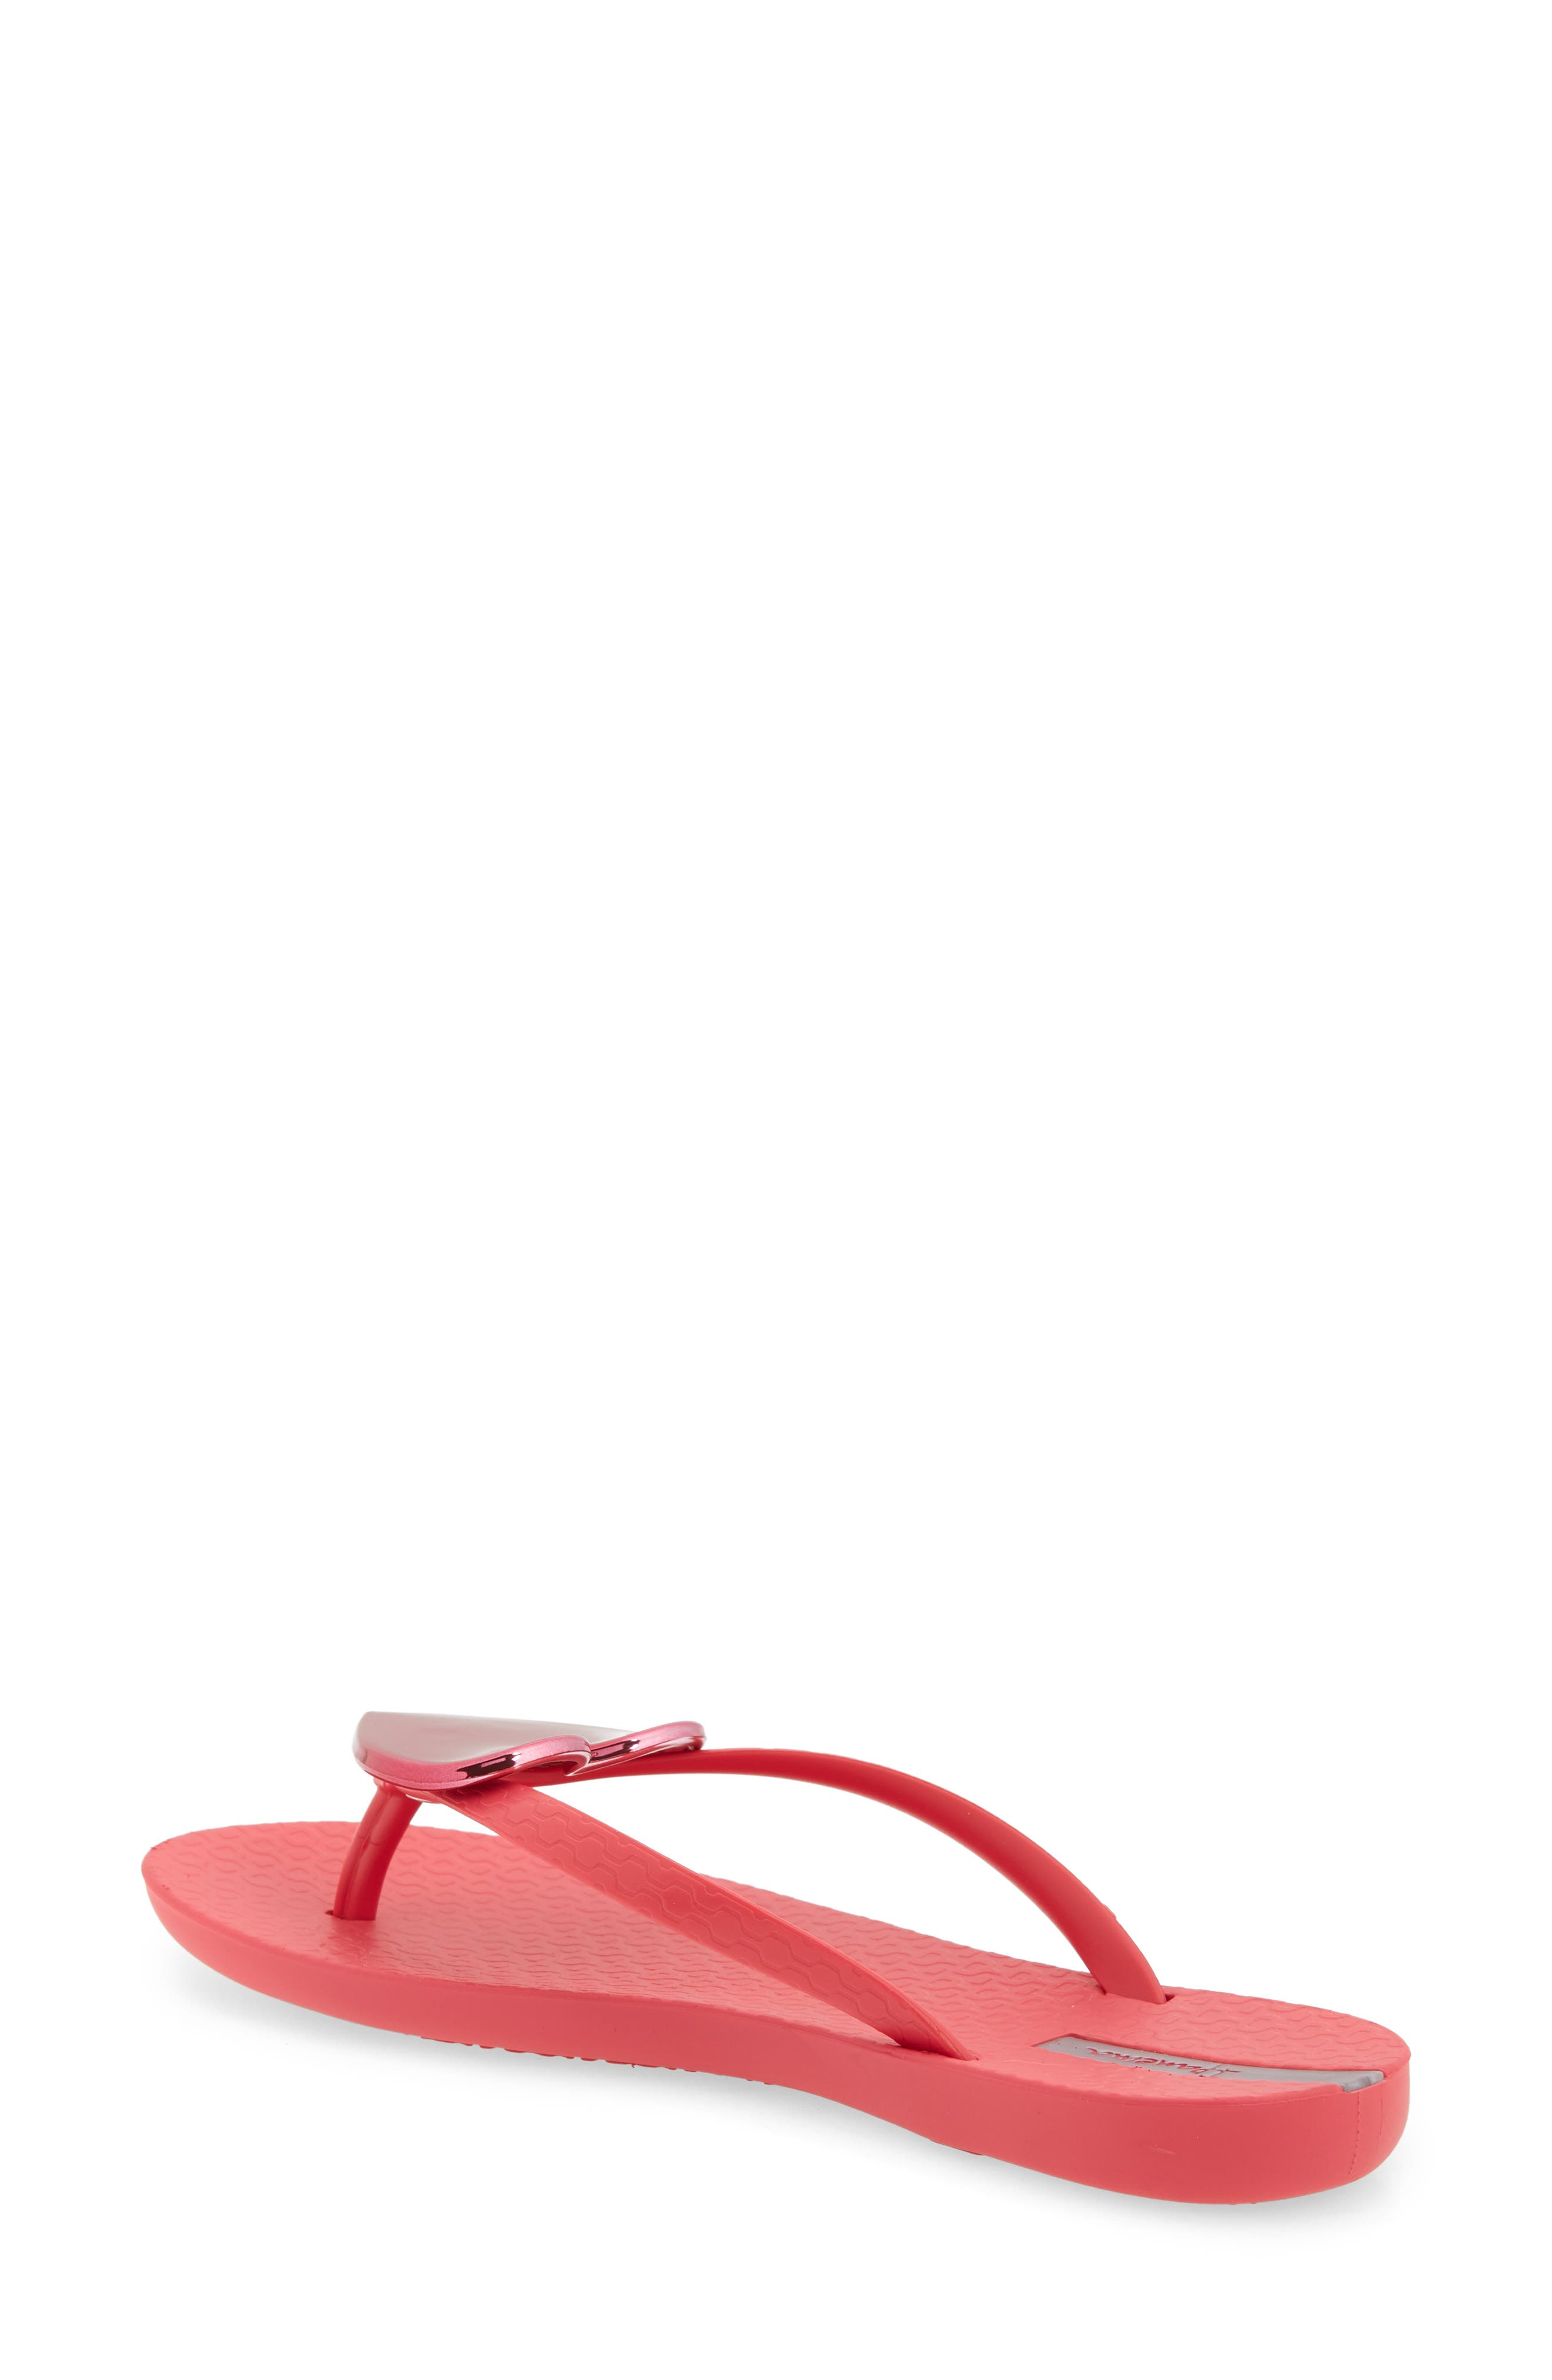 IPANEMA, Wave Heart Flip Flop, Alternate thumbnail 2, color, PINK/ RED